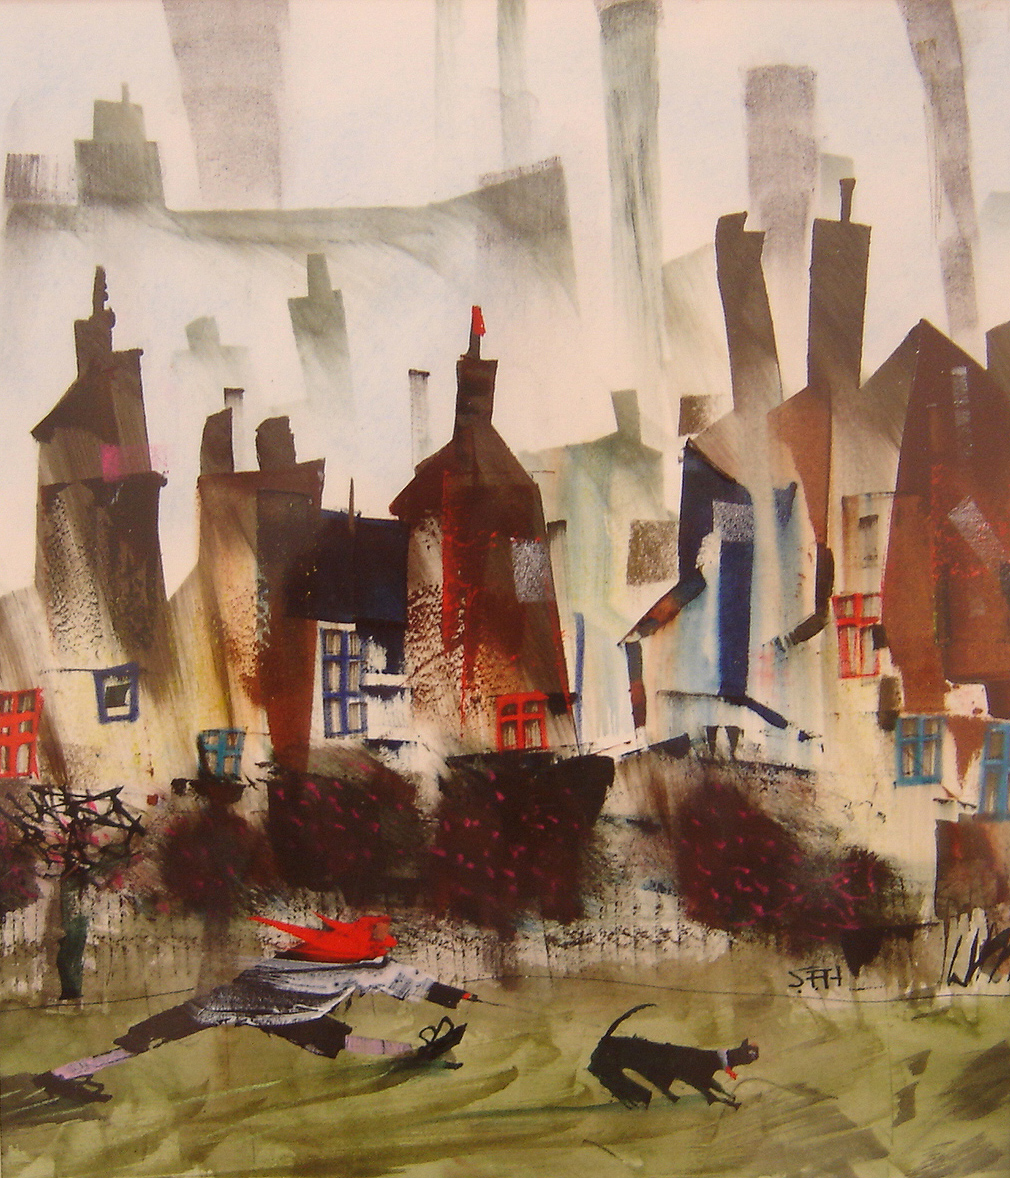 Sue Howells, Watercolour, Next Time It's Kennels. Click to enlarge